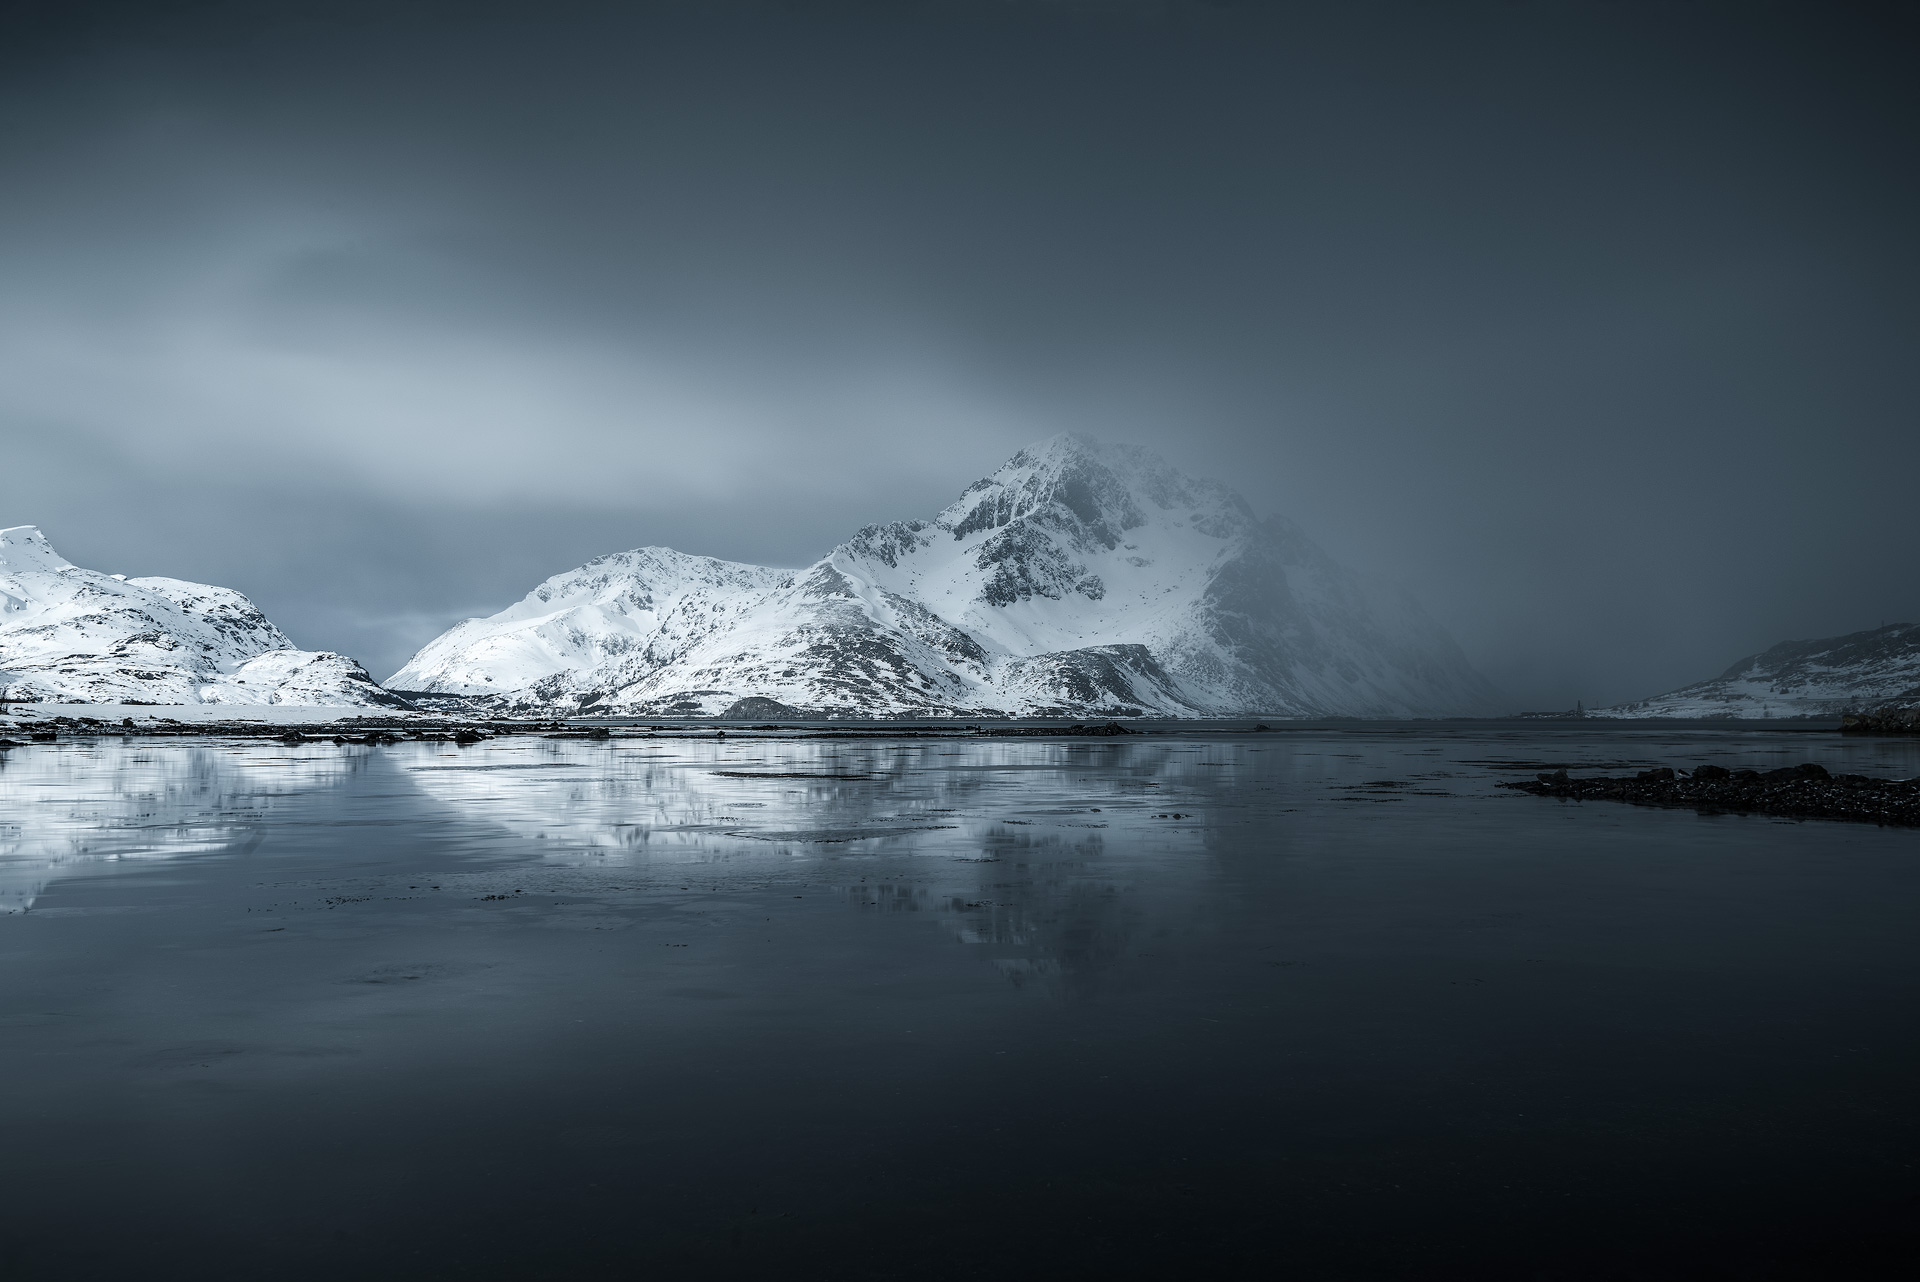 Changing weather when photographing the Lofoten Islands